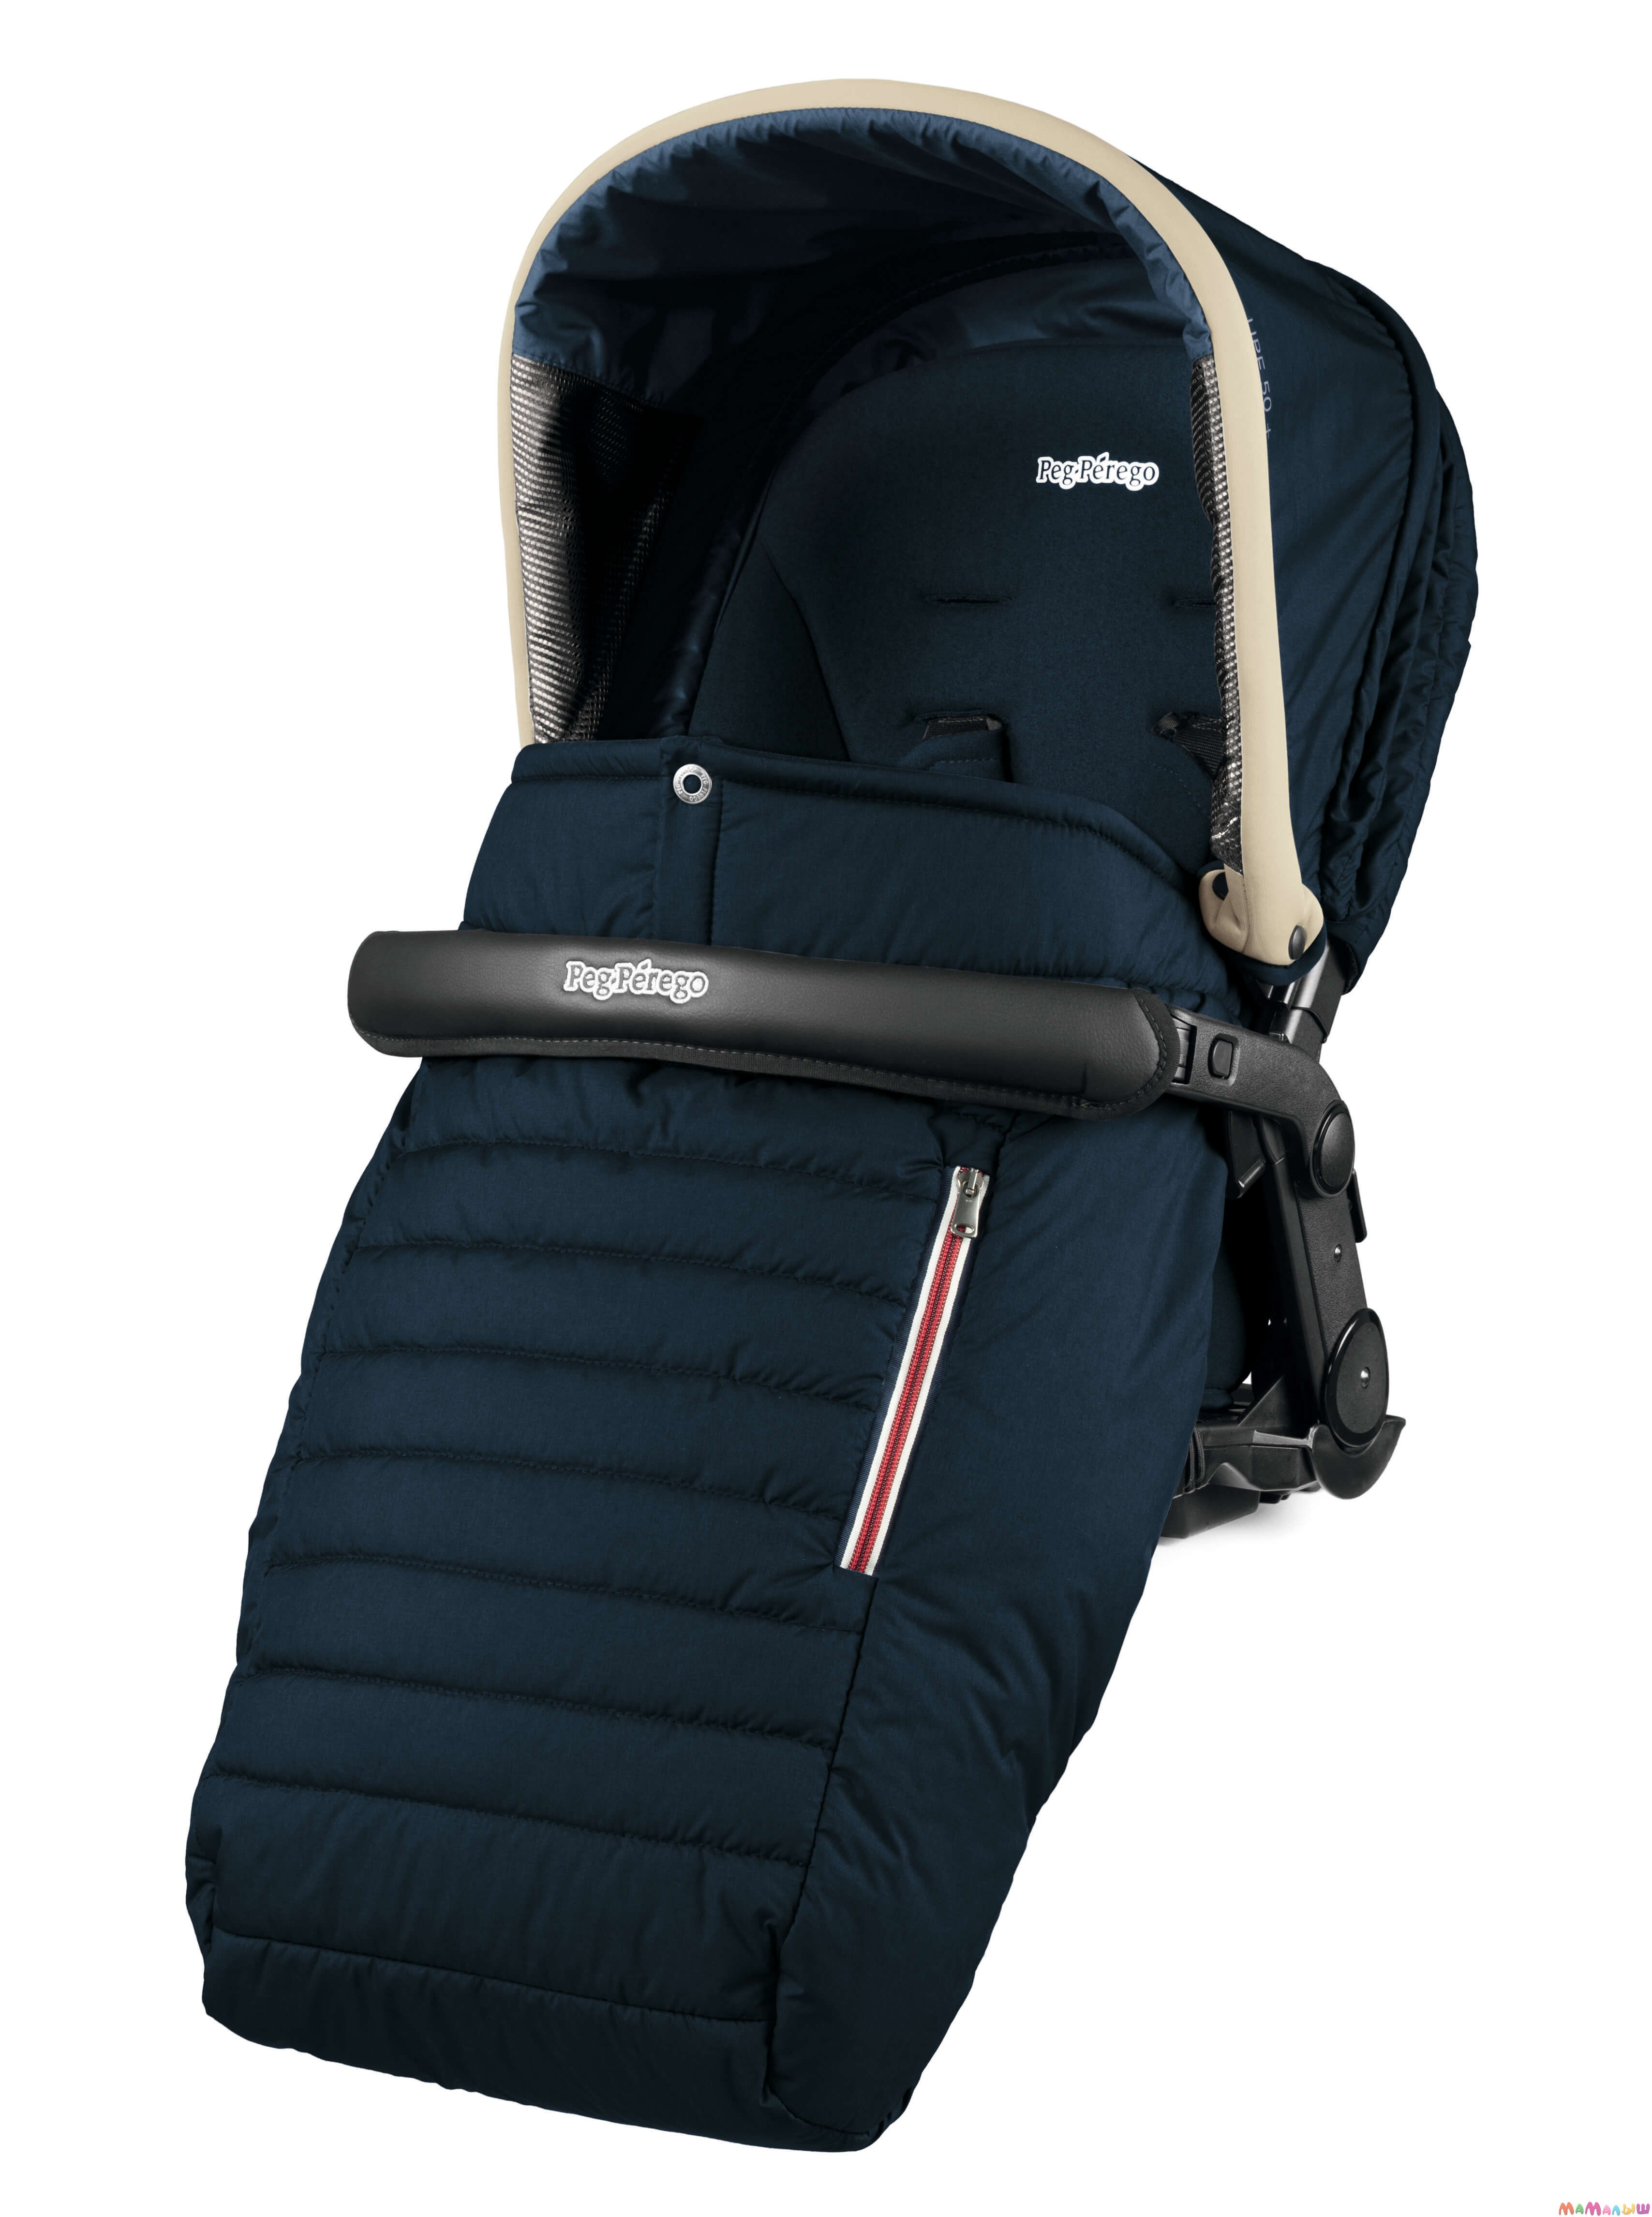 Sporta daļa PEG-PEREGO Seat Pop Up Breeze Blue IS03300062CH41TX41